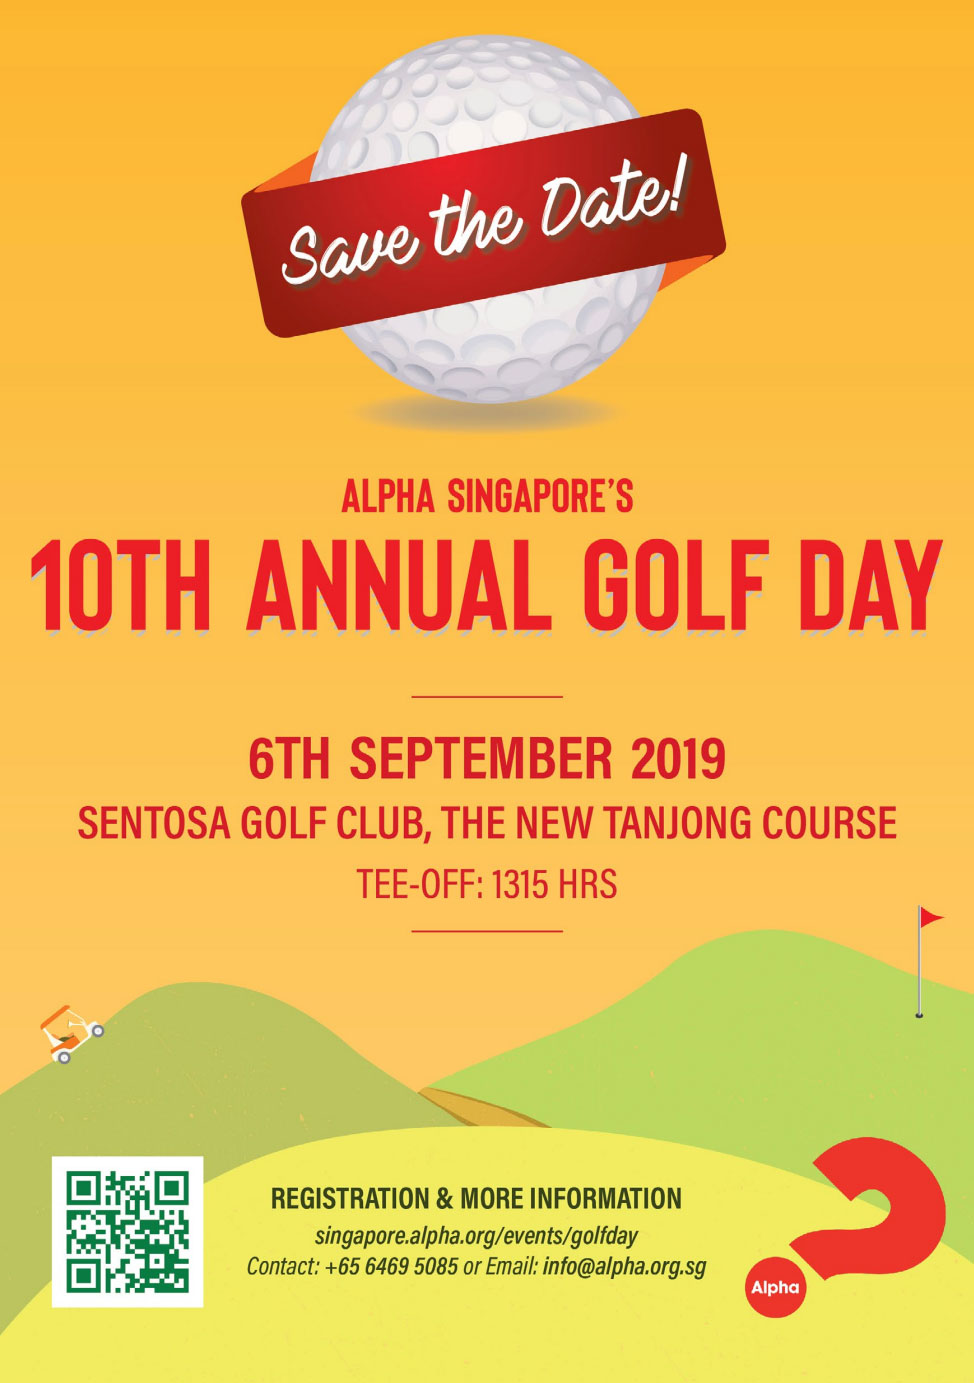 Alpha Singapore's 10th Annual Golf Day